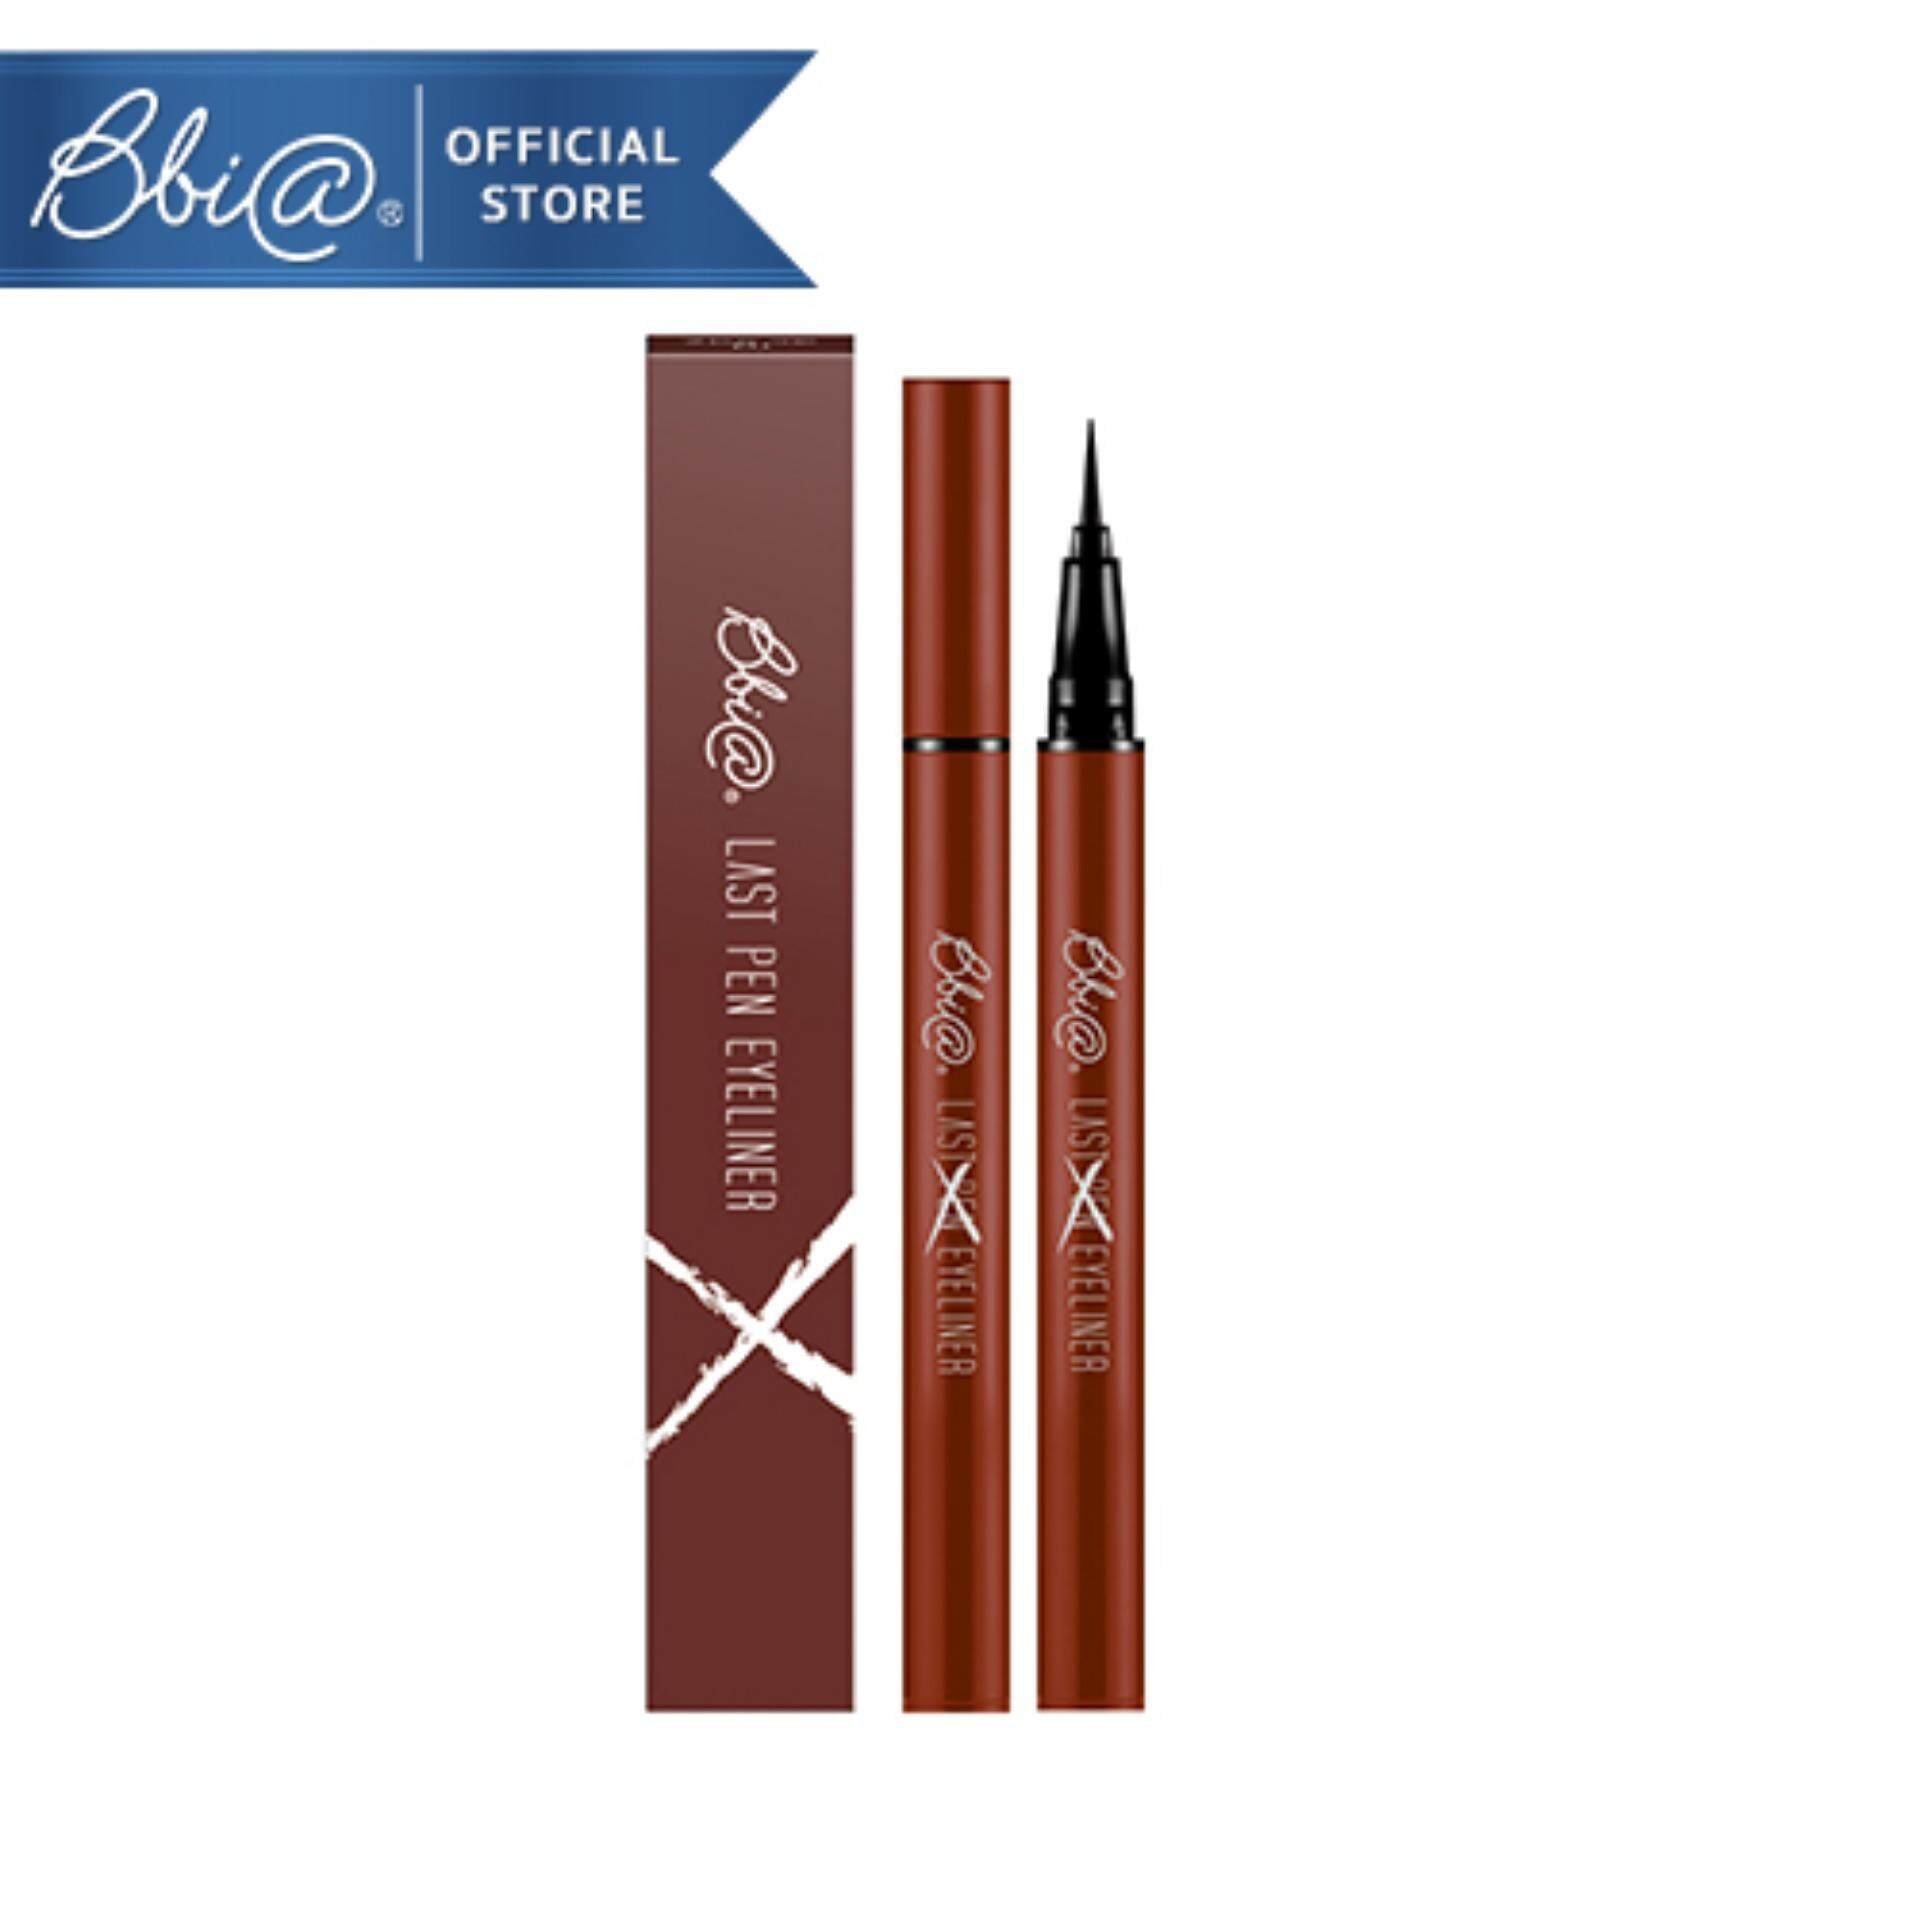 Bbia Last Pen Eyeliner - 04 Red Brown